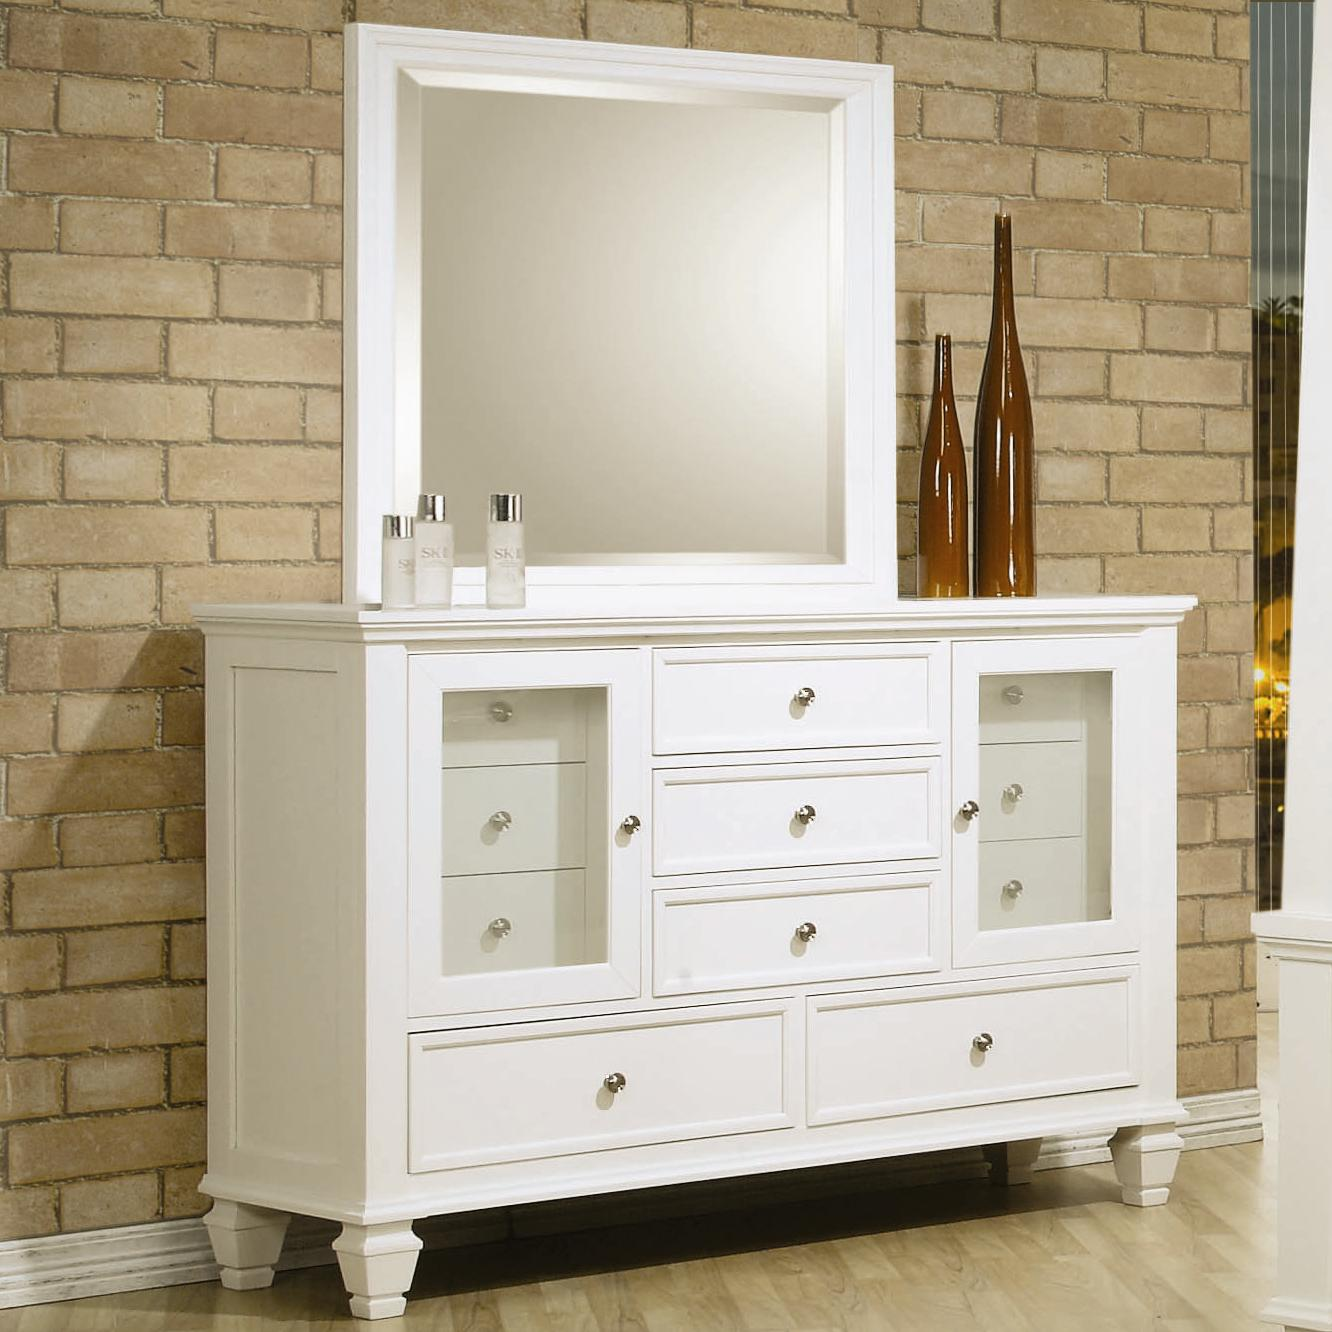 Sandy Beach Dresser and Mirror by Coaster at Value City Furniture